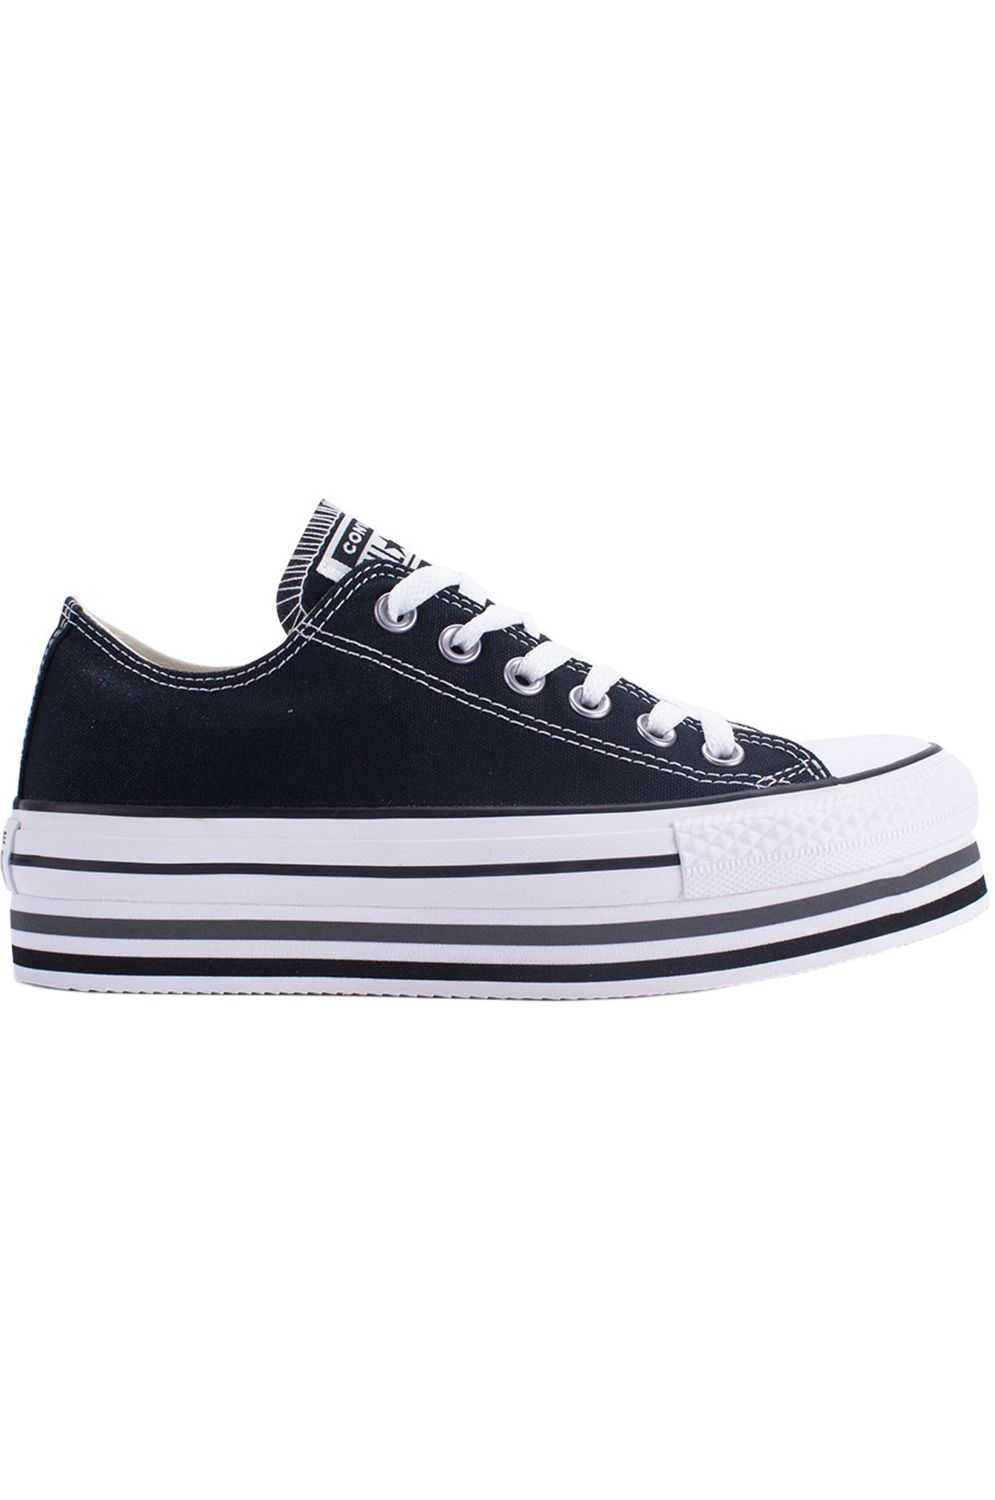 Tenis Converse CHUCK TAYLOR ALL STAR PLATFORM LAYER OX Black/White/Thunder